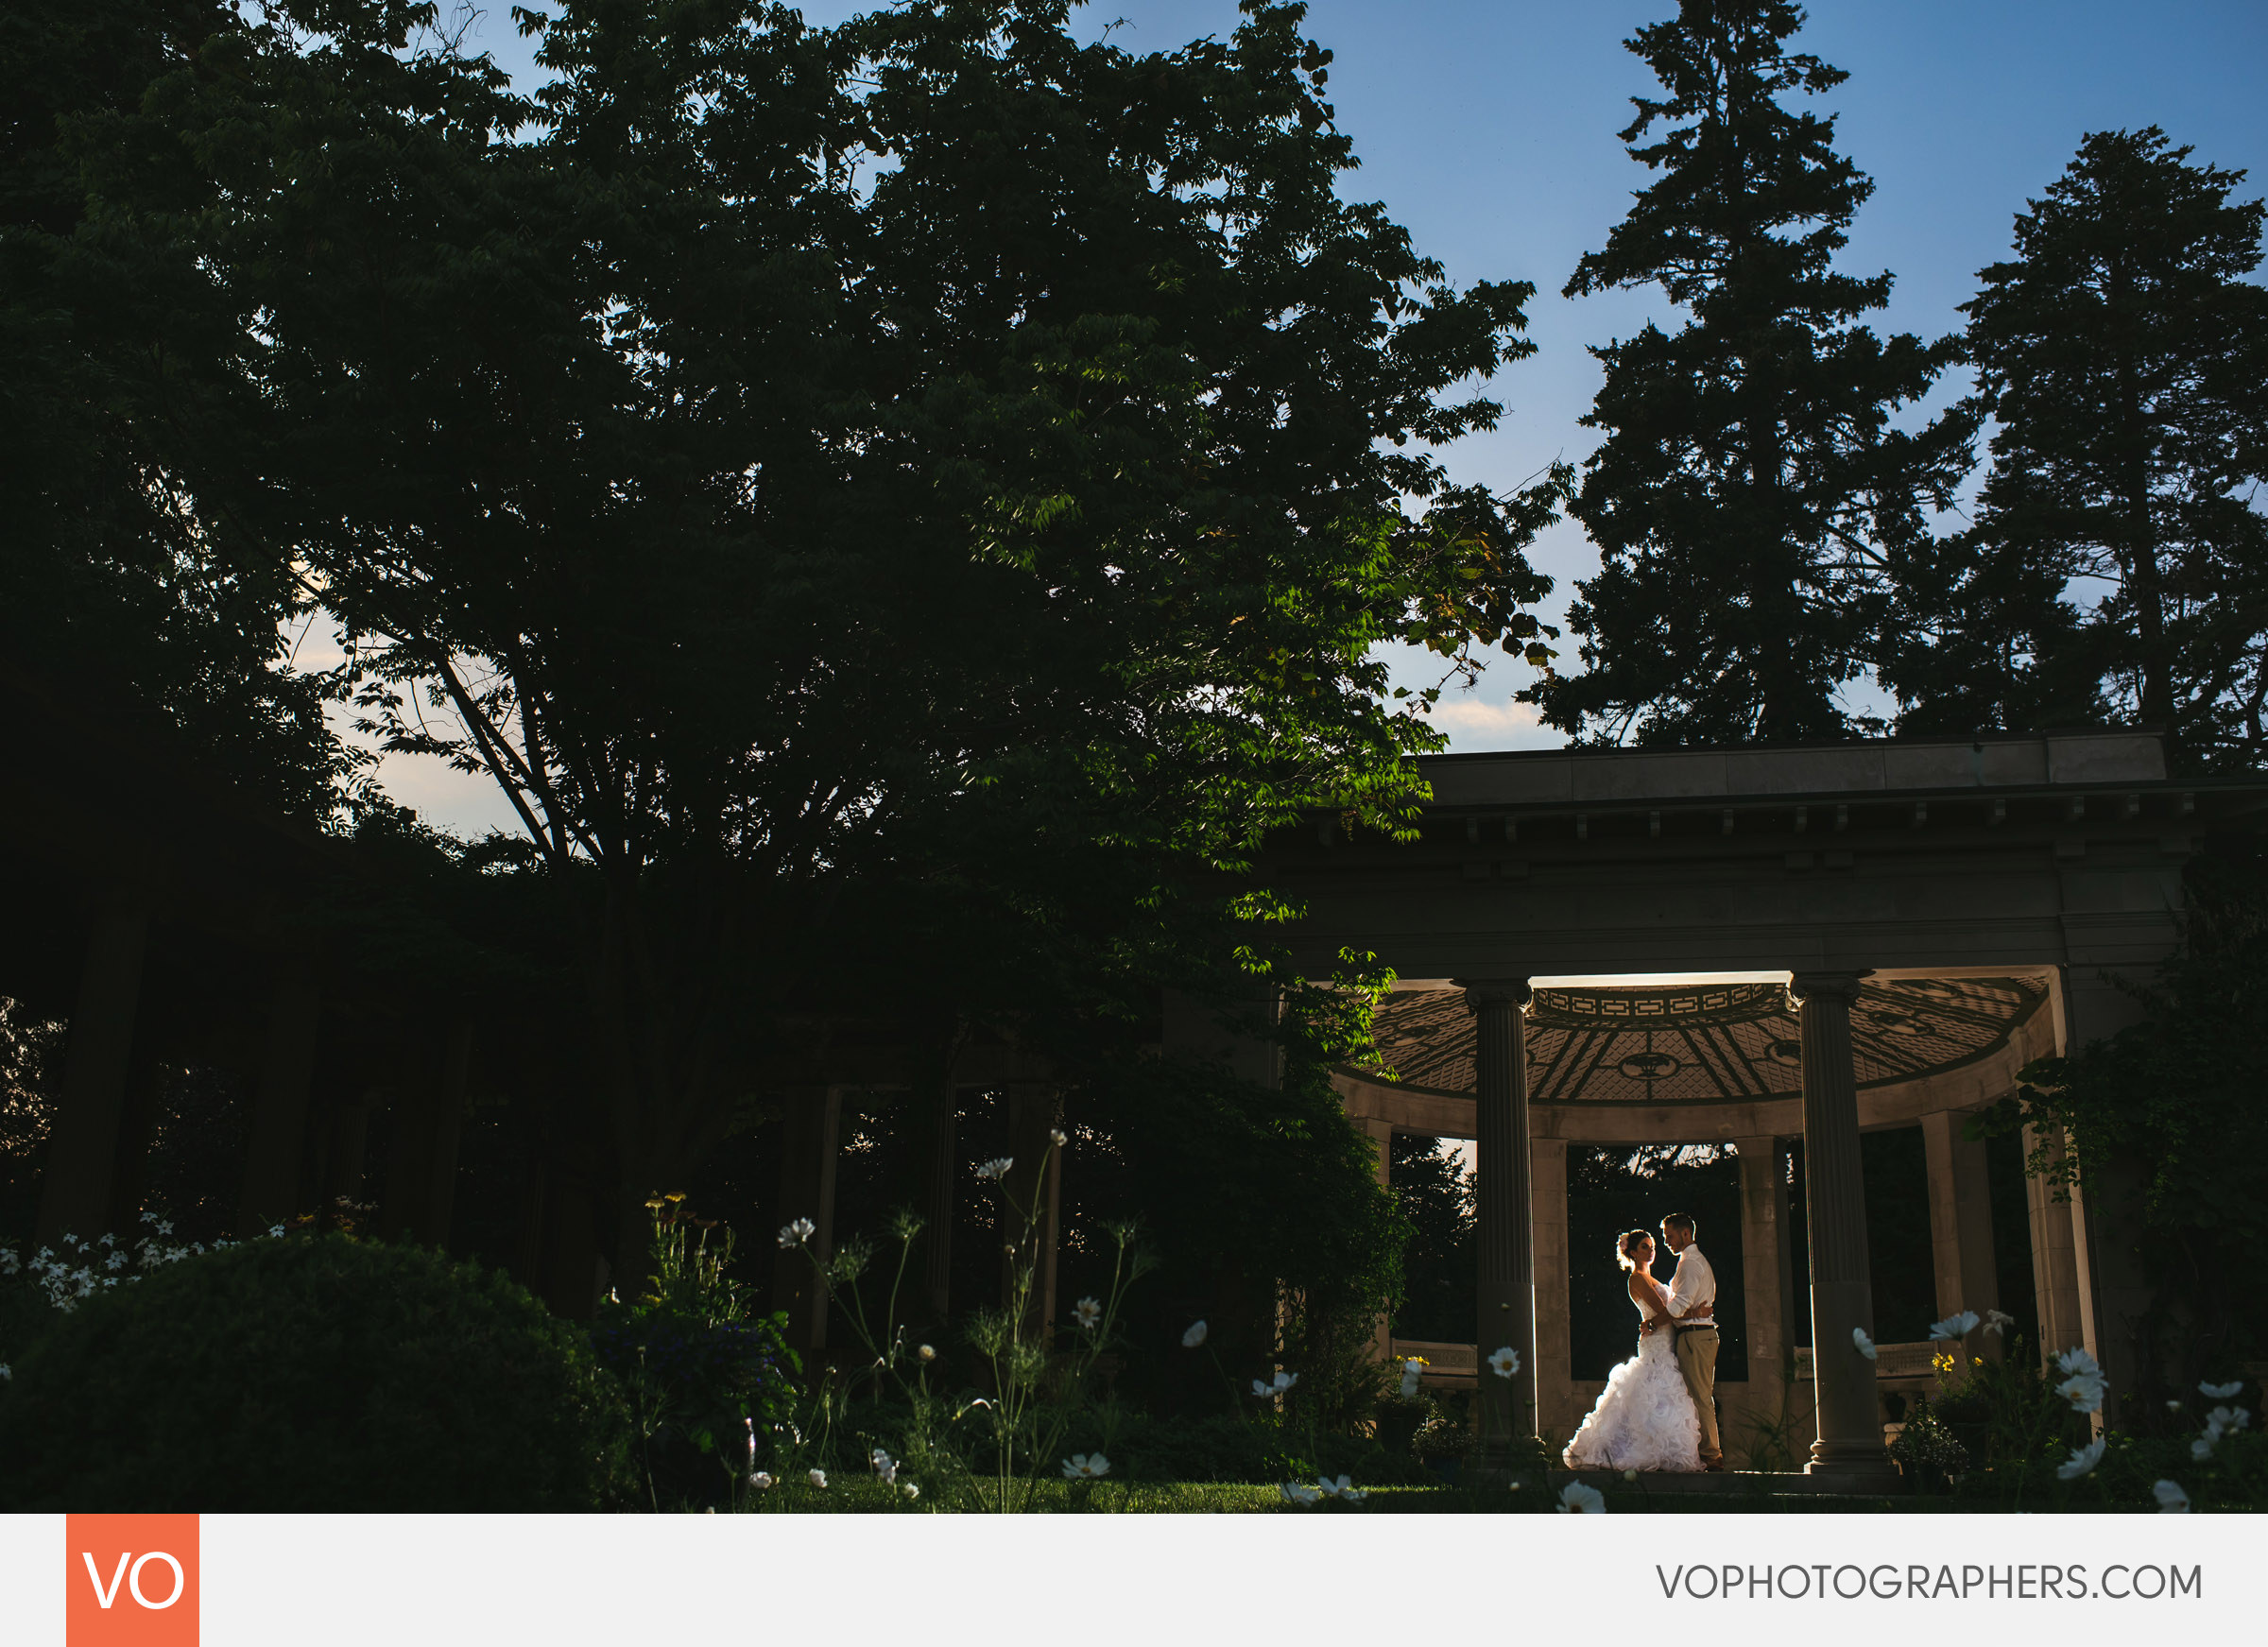 Harkness-Park-Eolia-Mansion-Wedding-Krista-Dan-0066